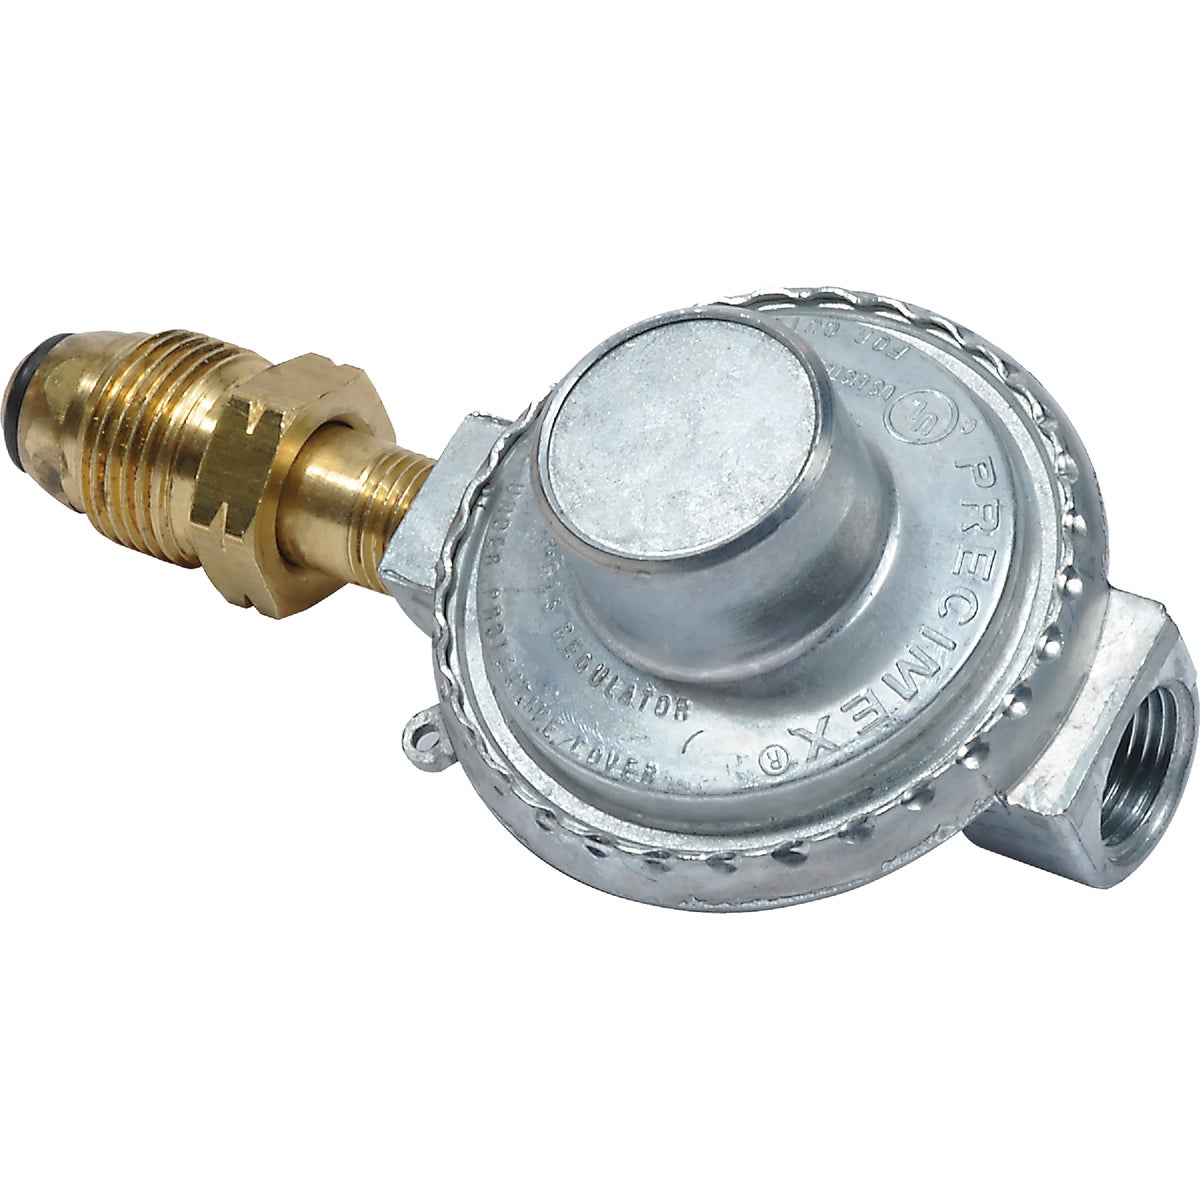 LOW PRESSURE REGULATOR - F276136 by Mr Heater Corp